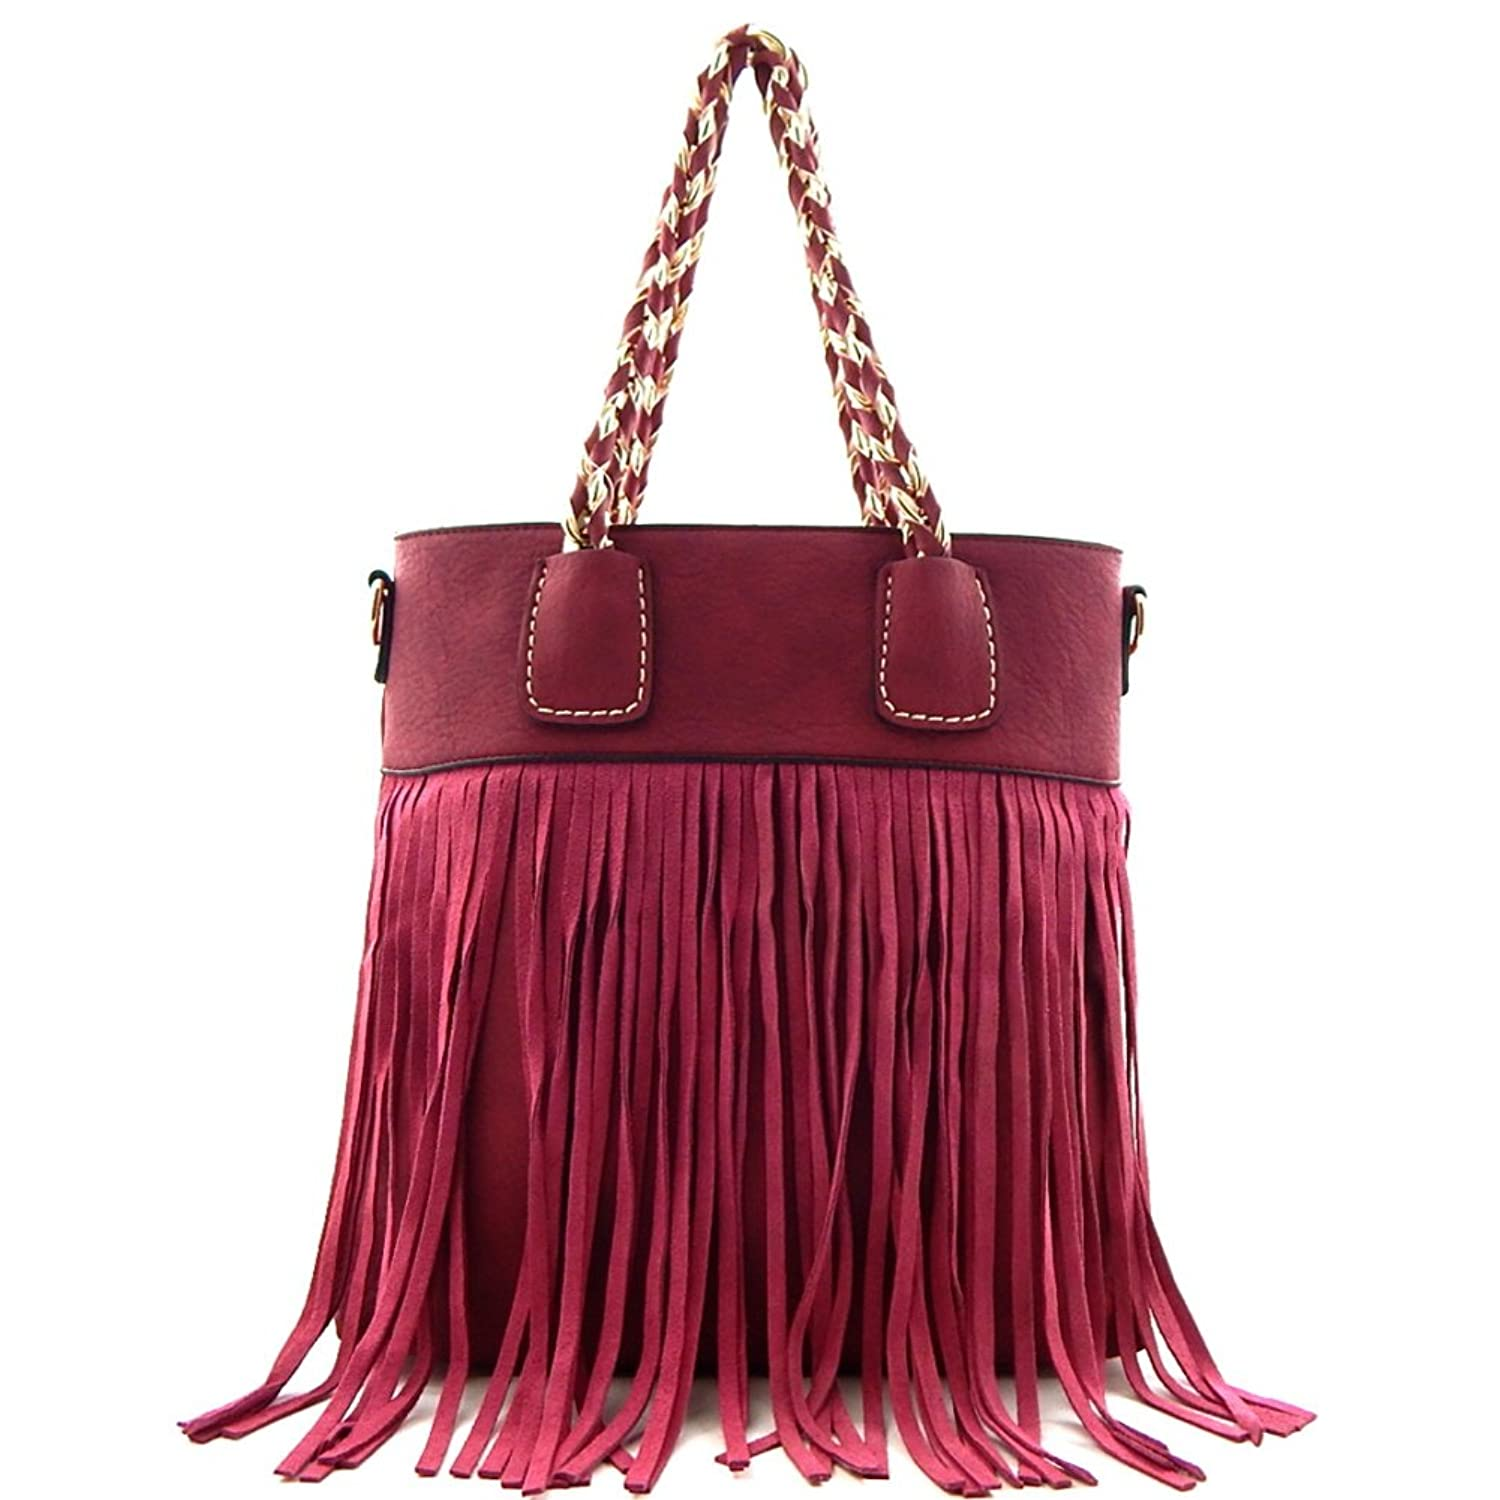 Leather Fringed 2 Way Tote Bag